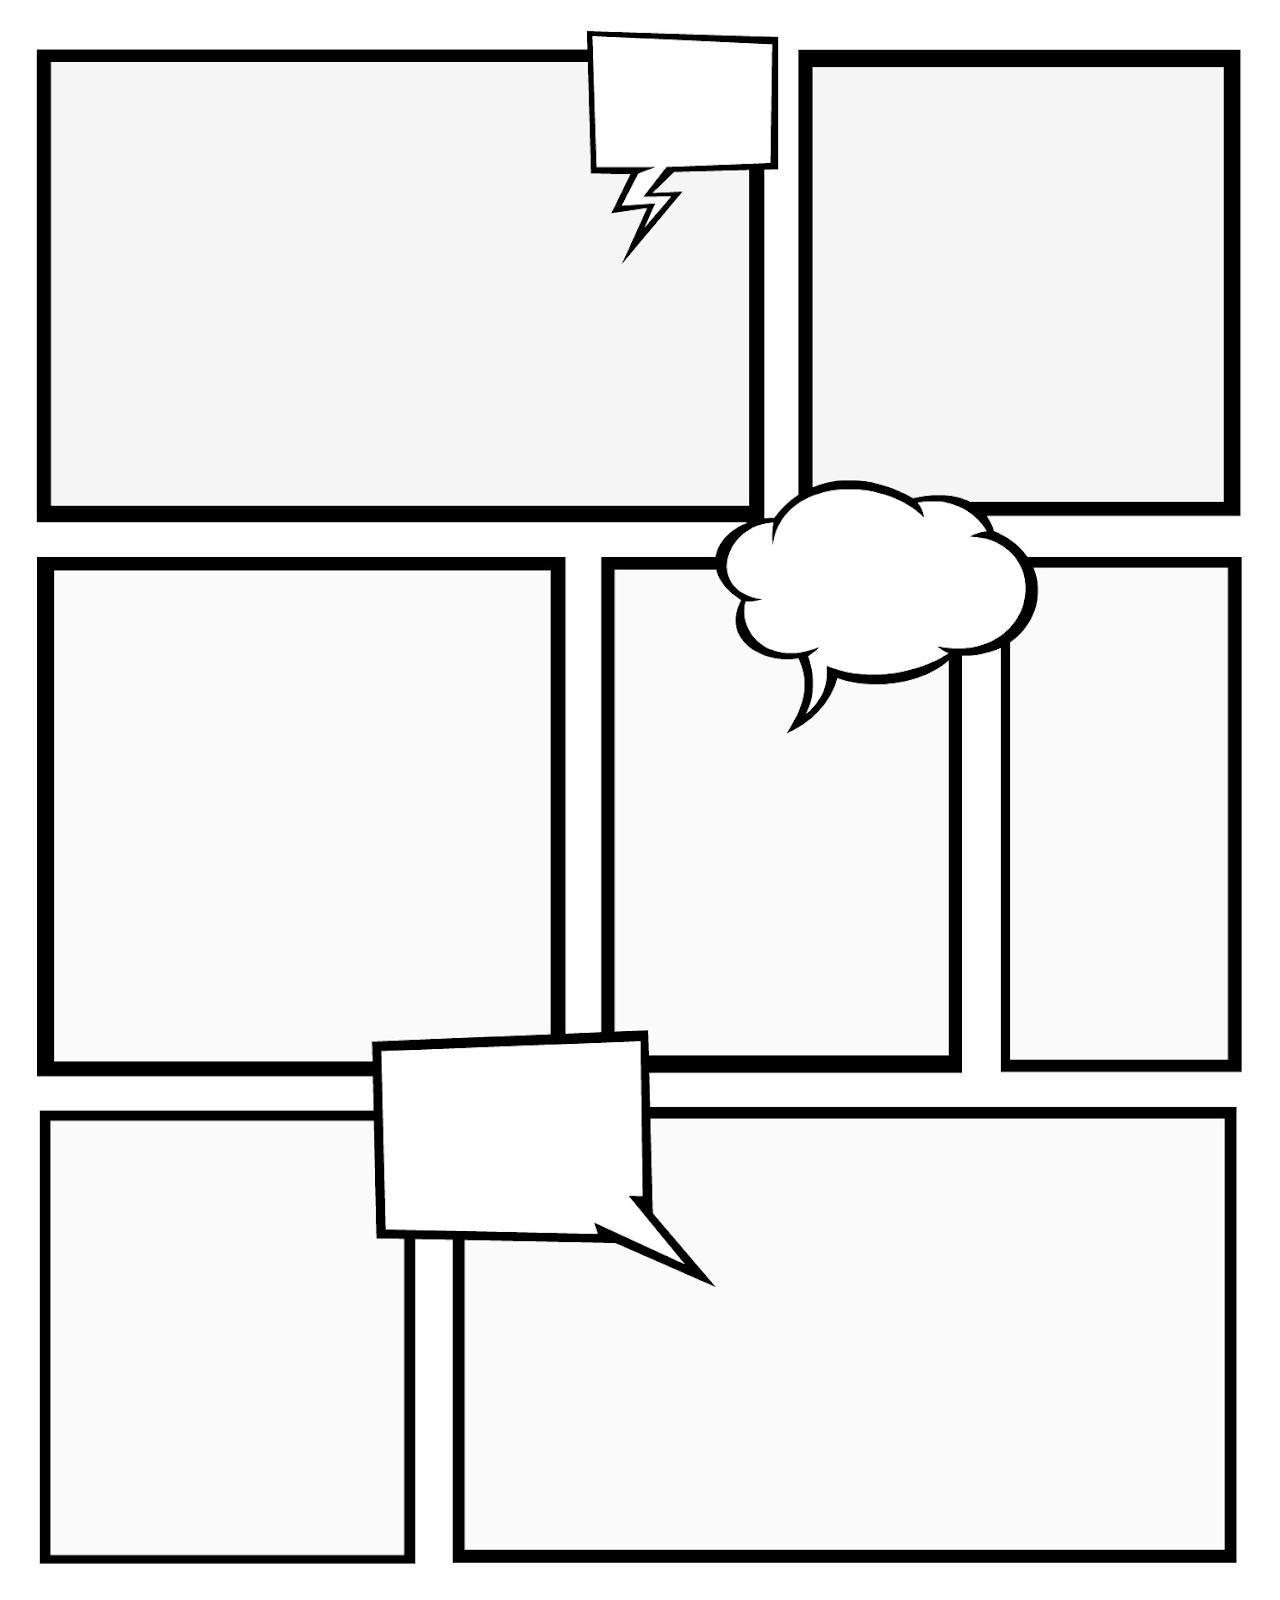 Comic Strip Template Printable